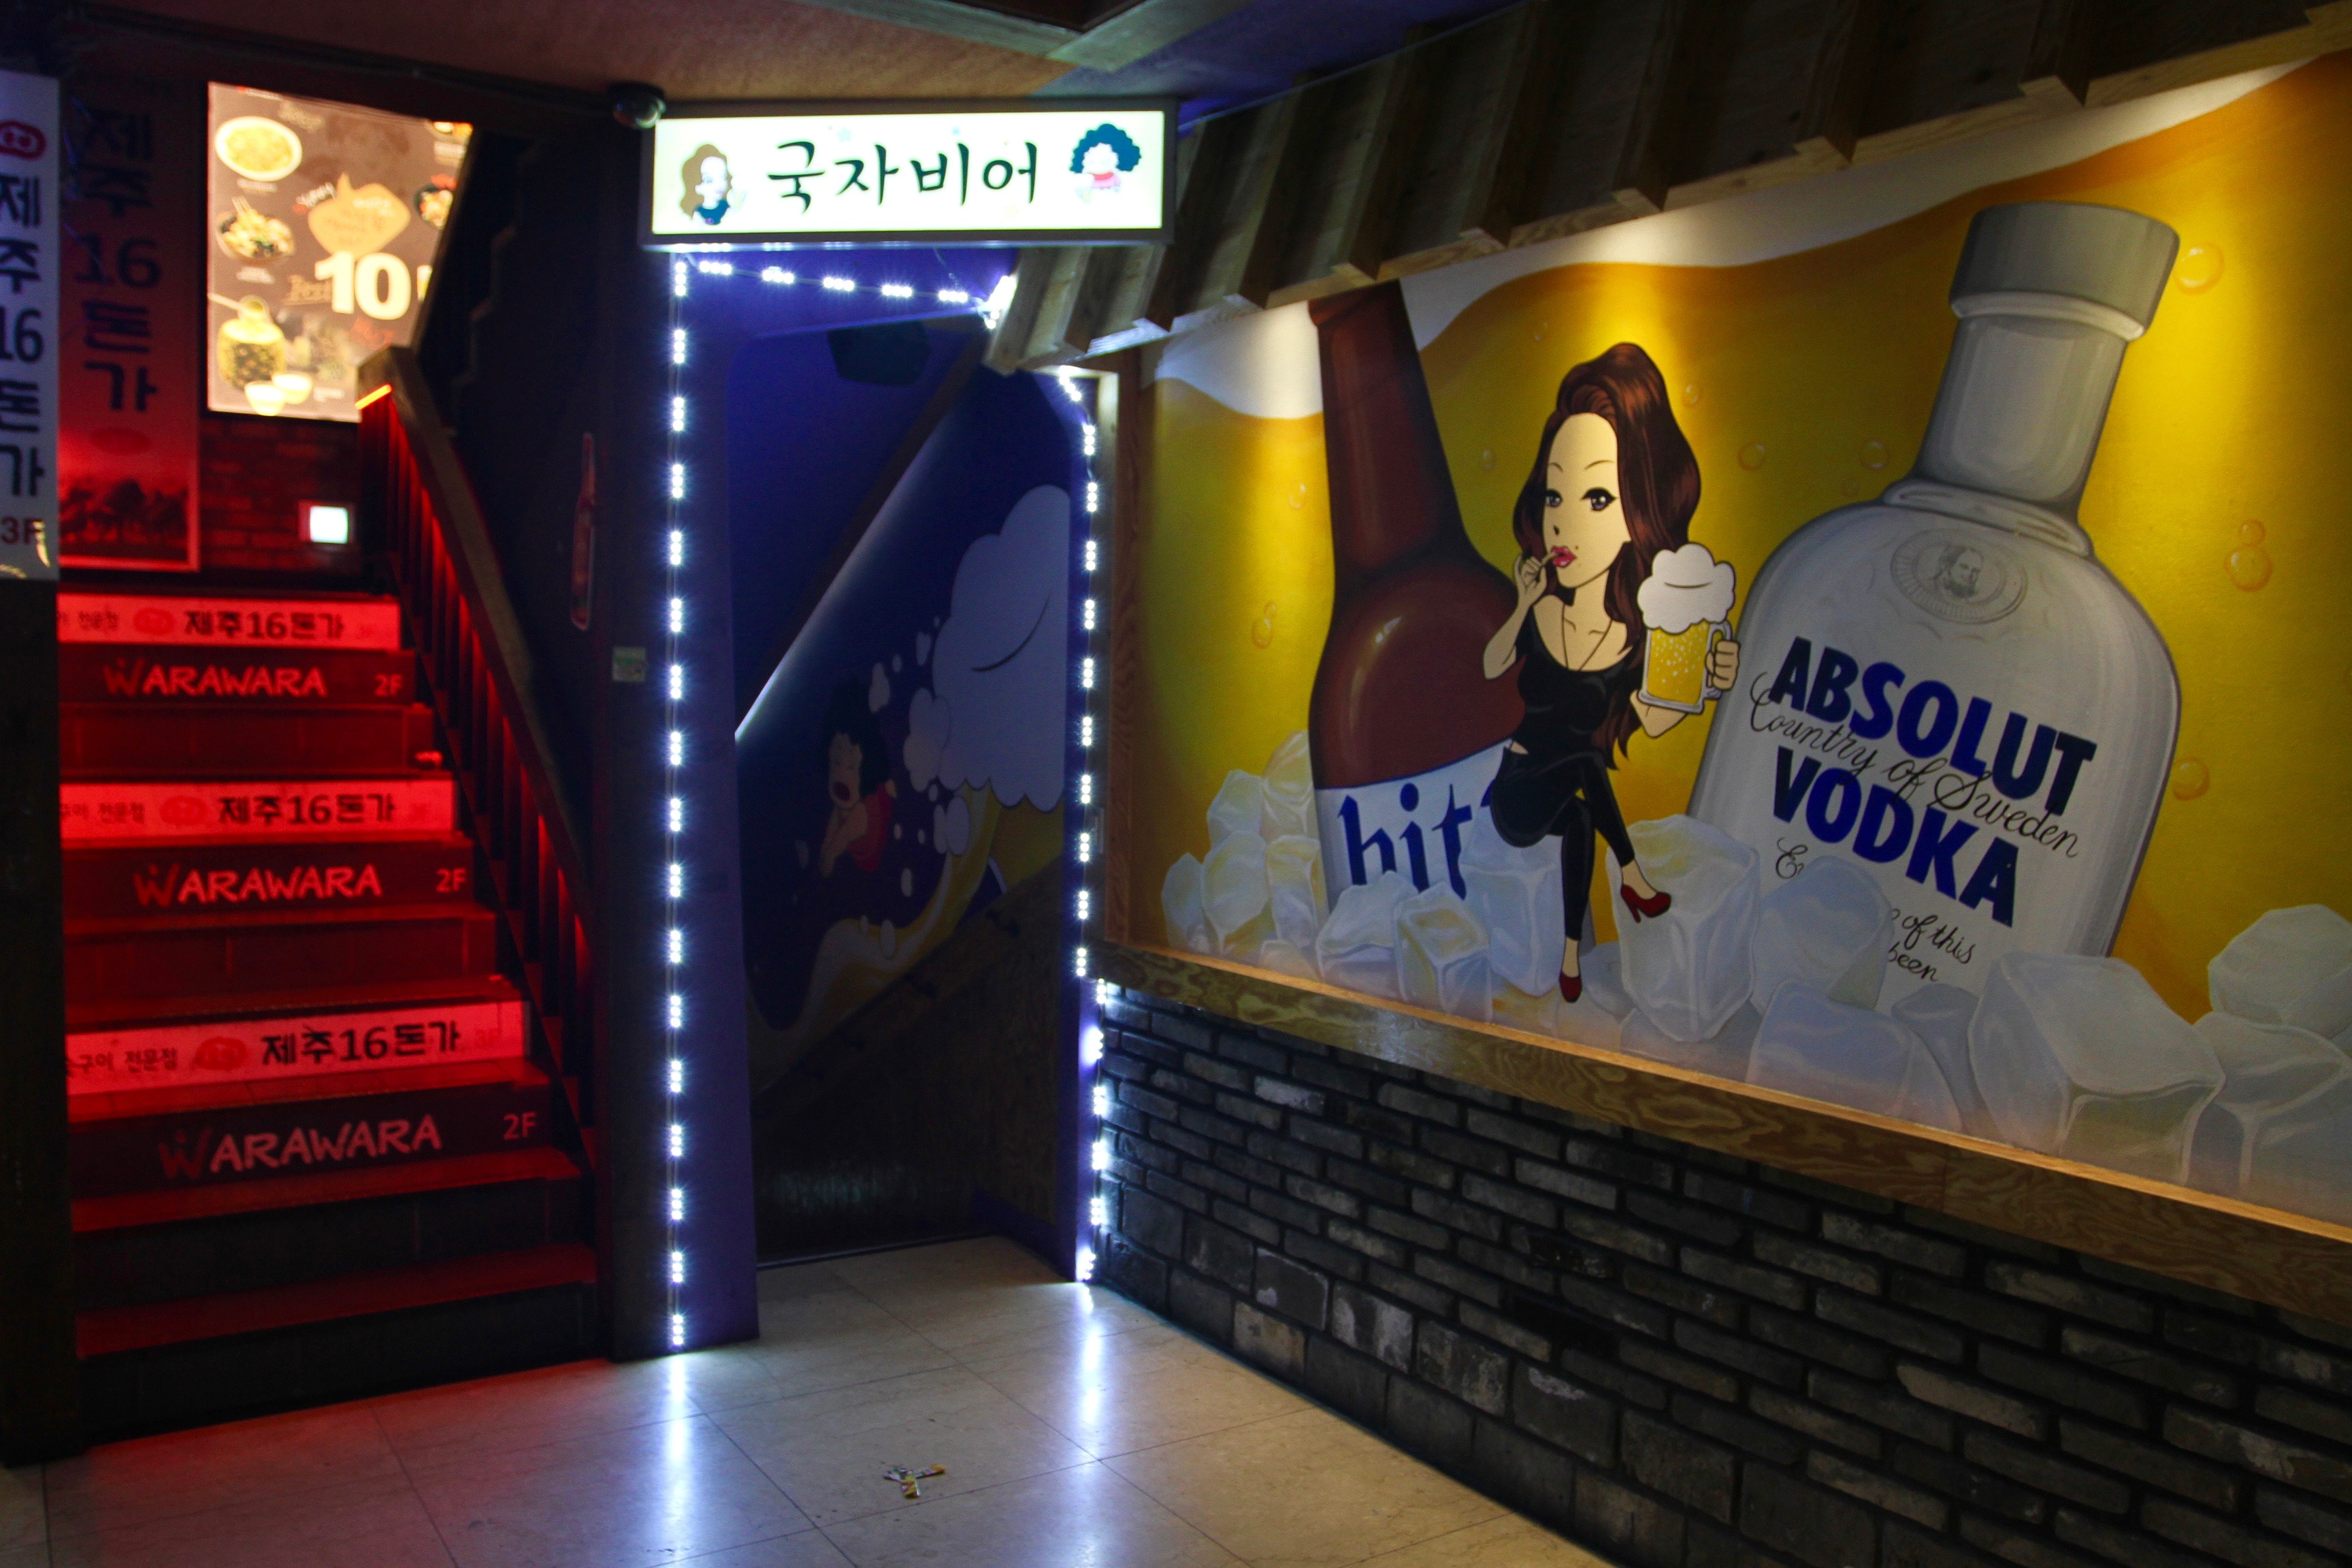 Nightlife in Jongno, Seoul, Korea \u2013 Notes from Camelid Country